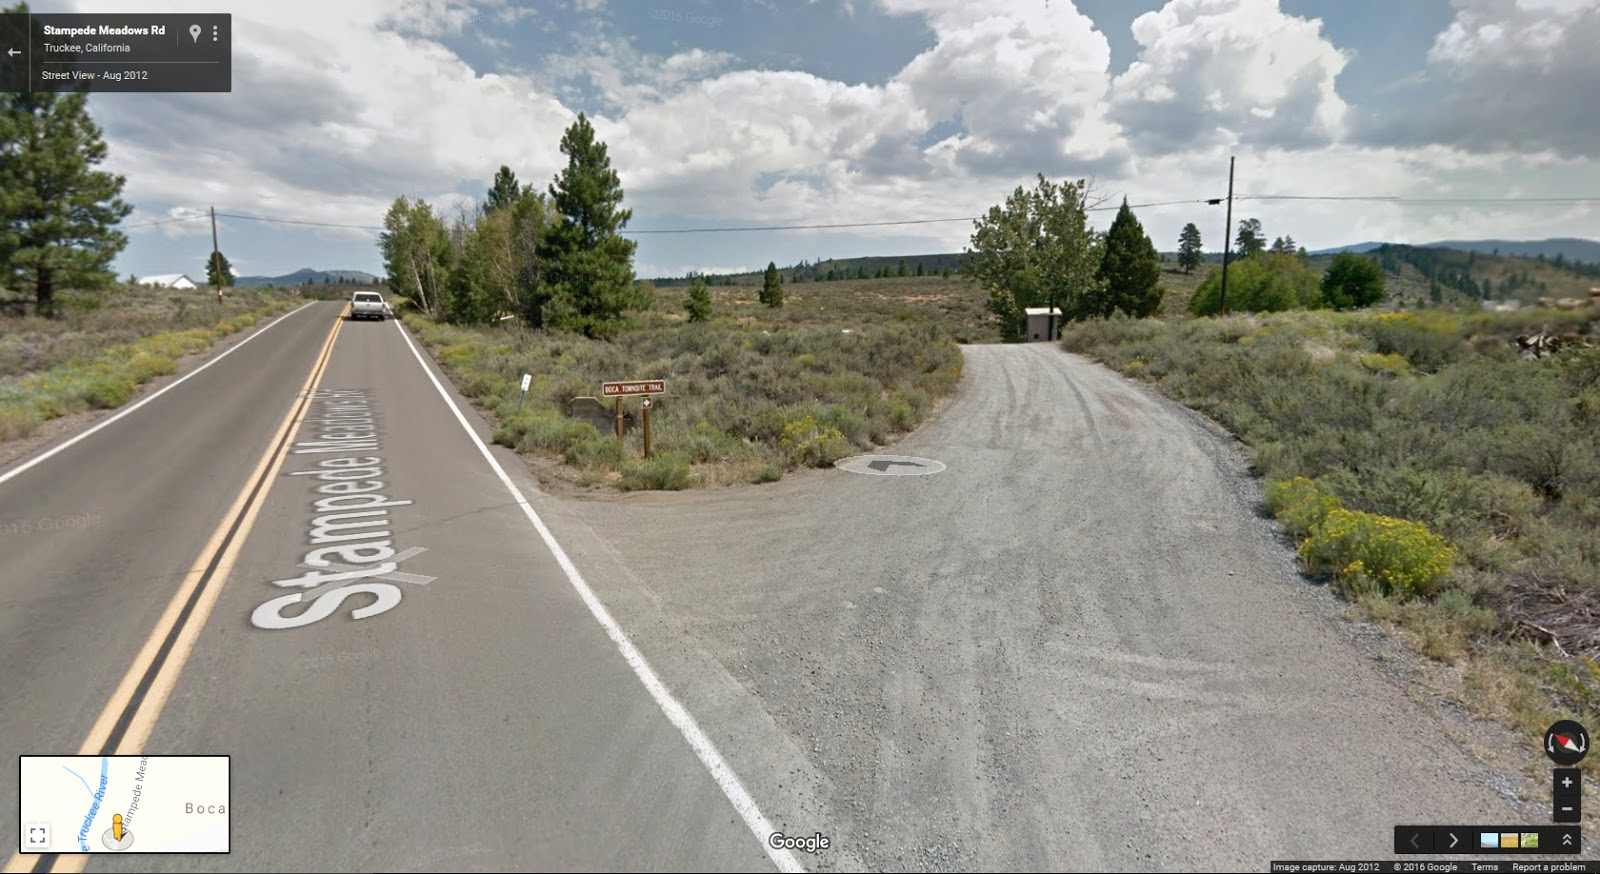 A Google street view of the trailhead